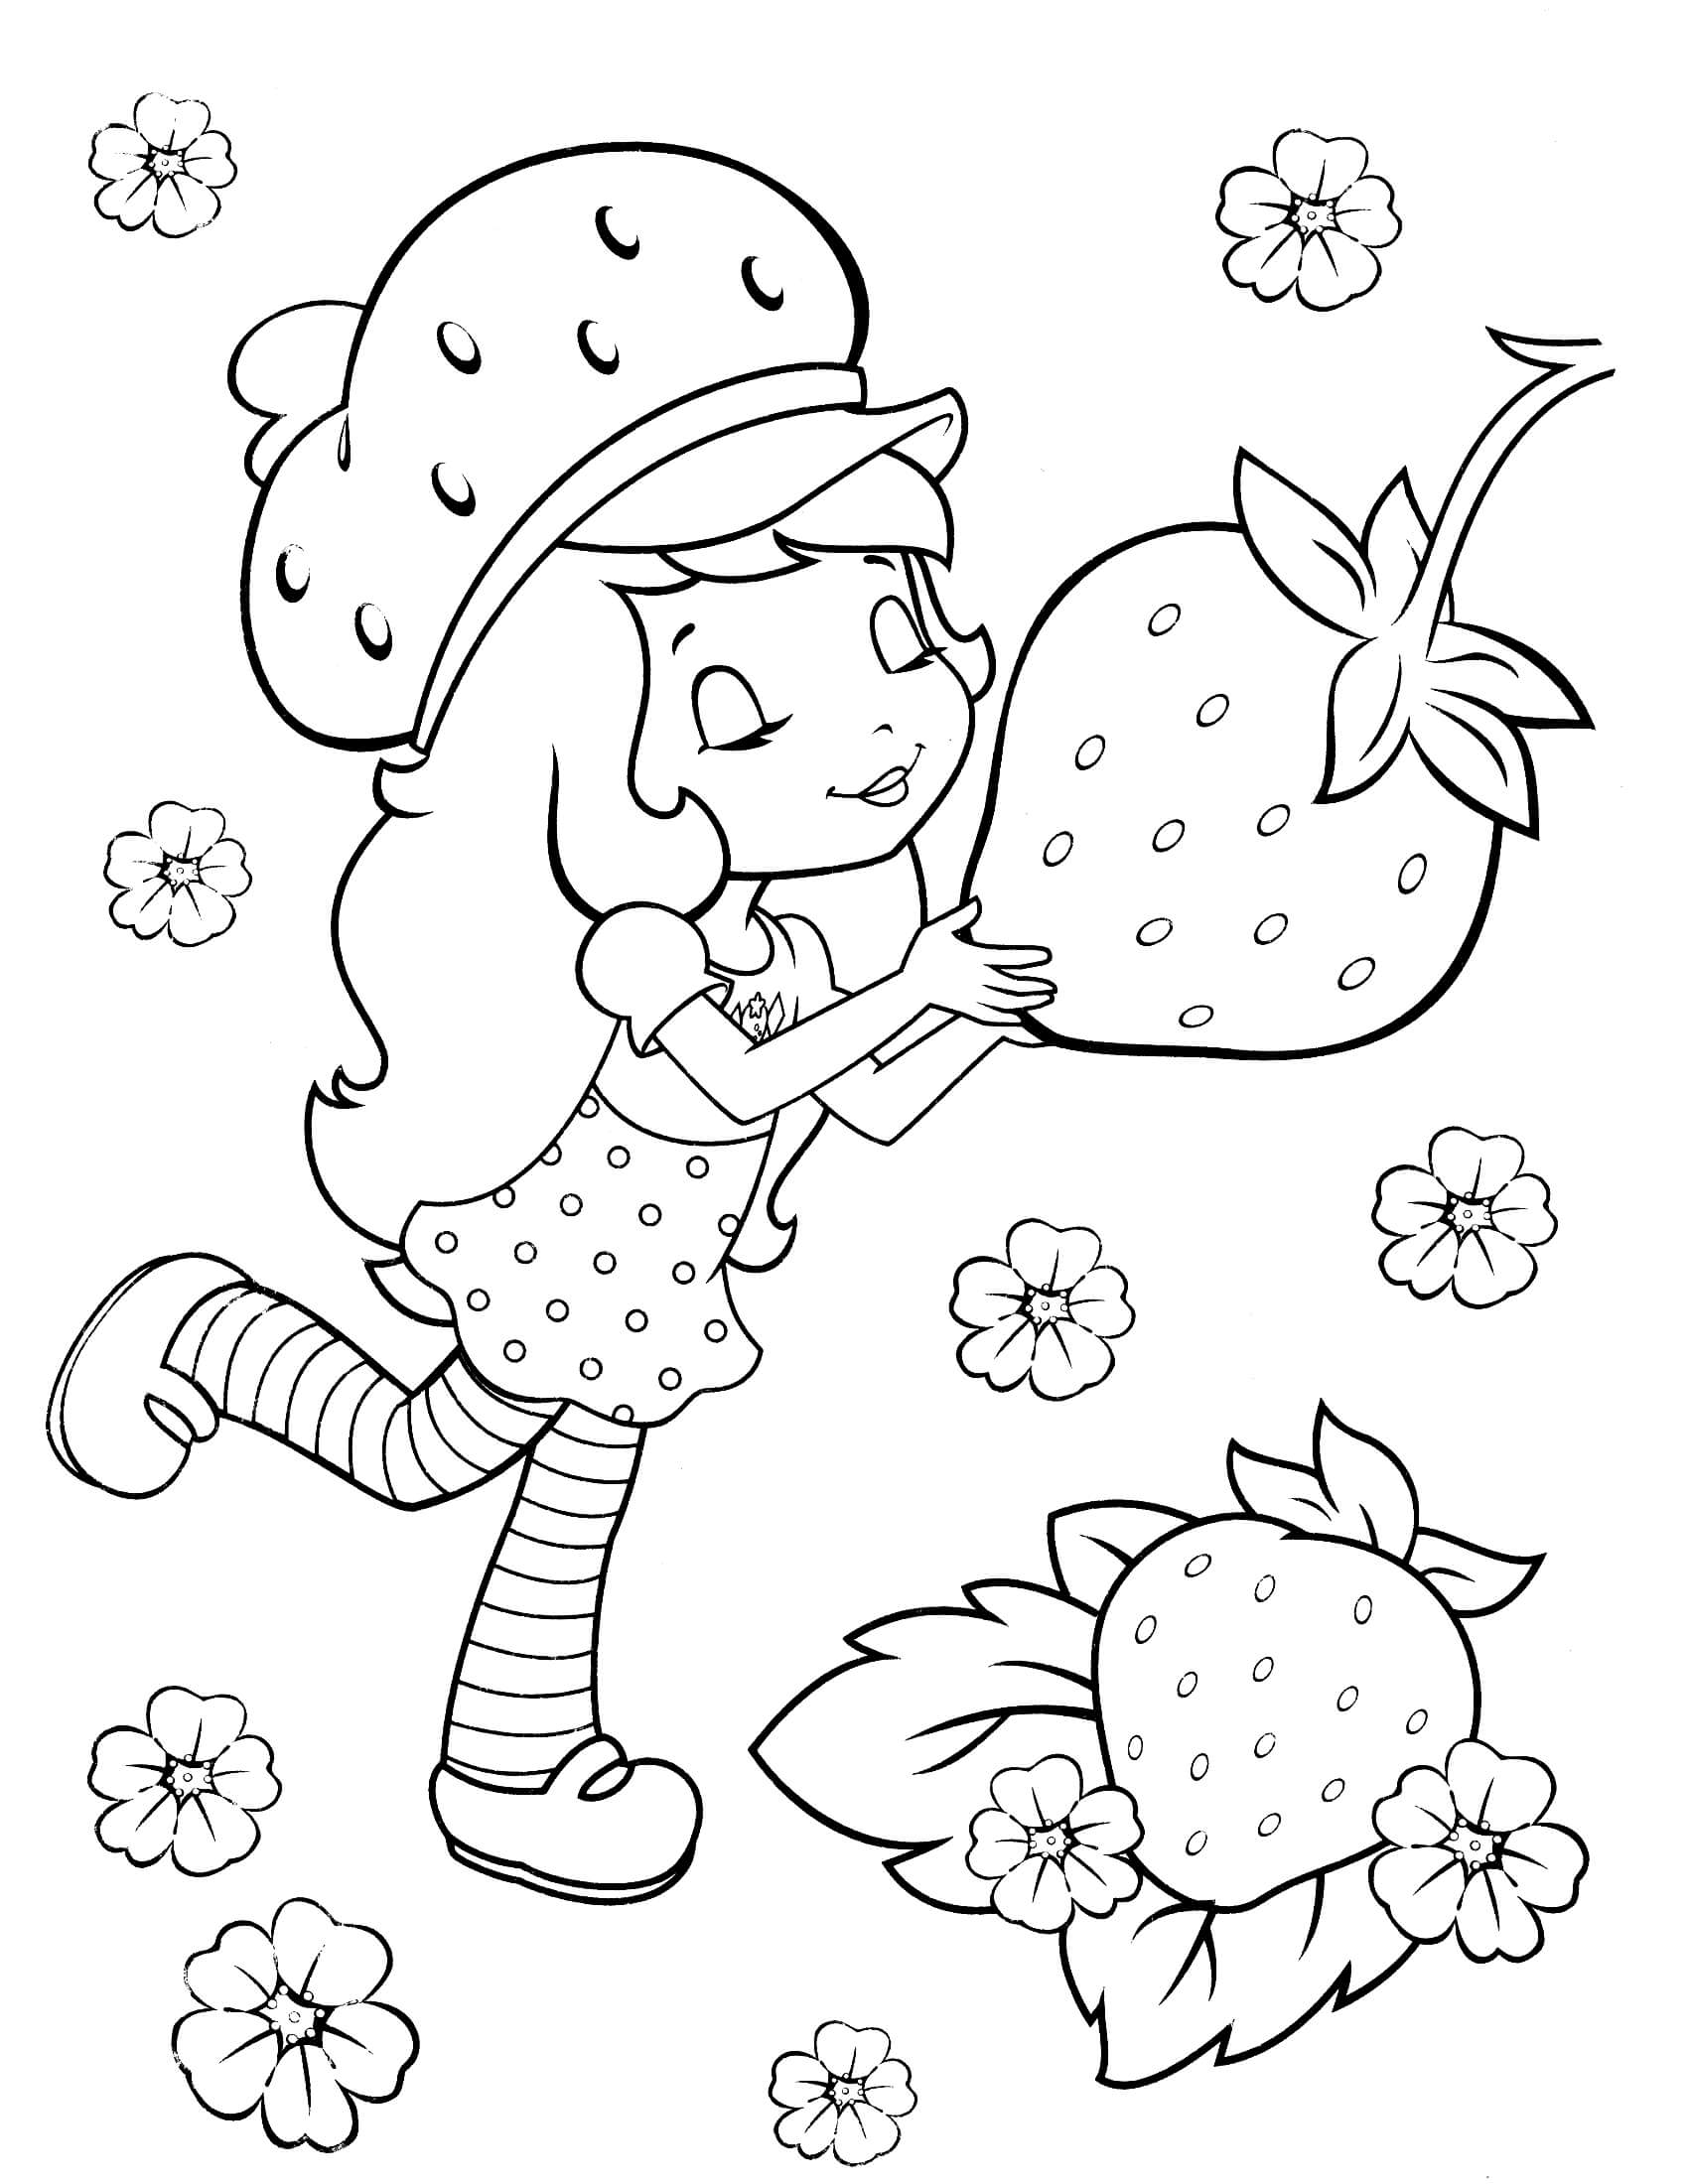 strawberry shortcake pictures to color strawberry shortcake 27 coloringcolorcom pictures to shortcake color strawberry